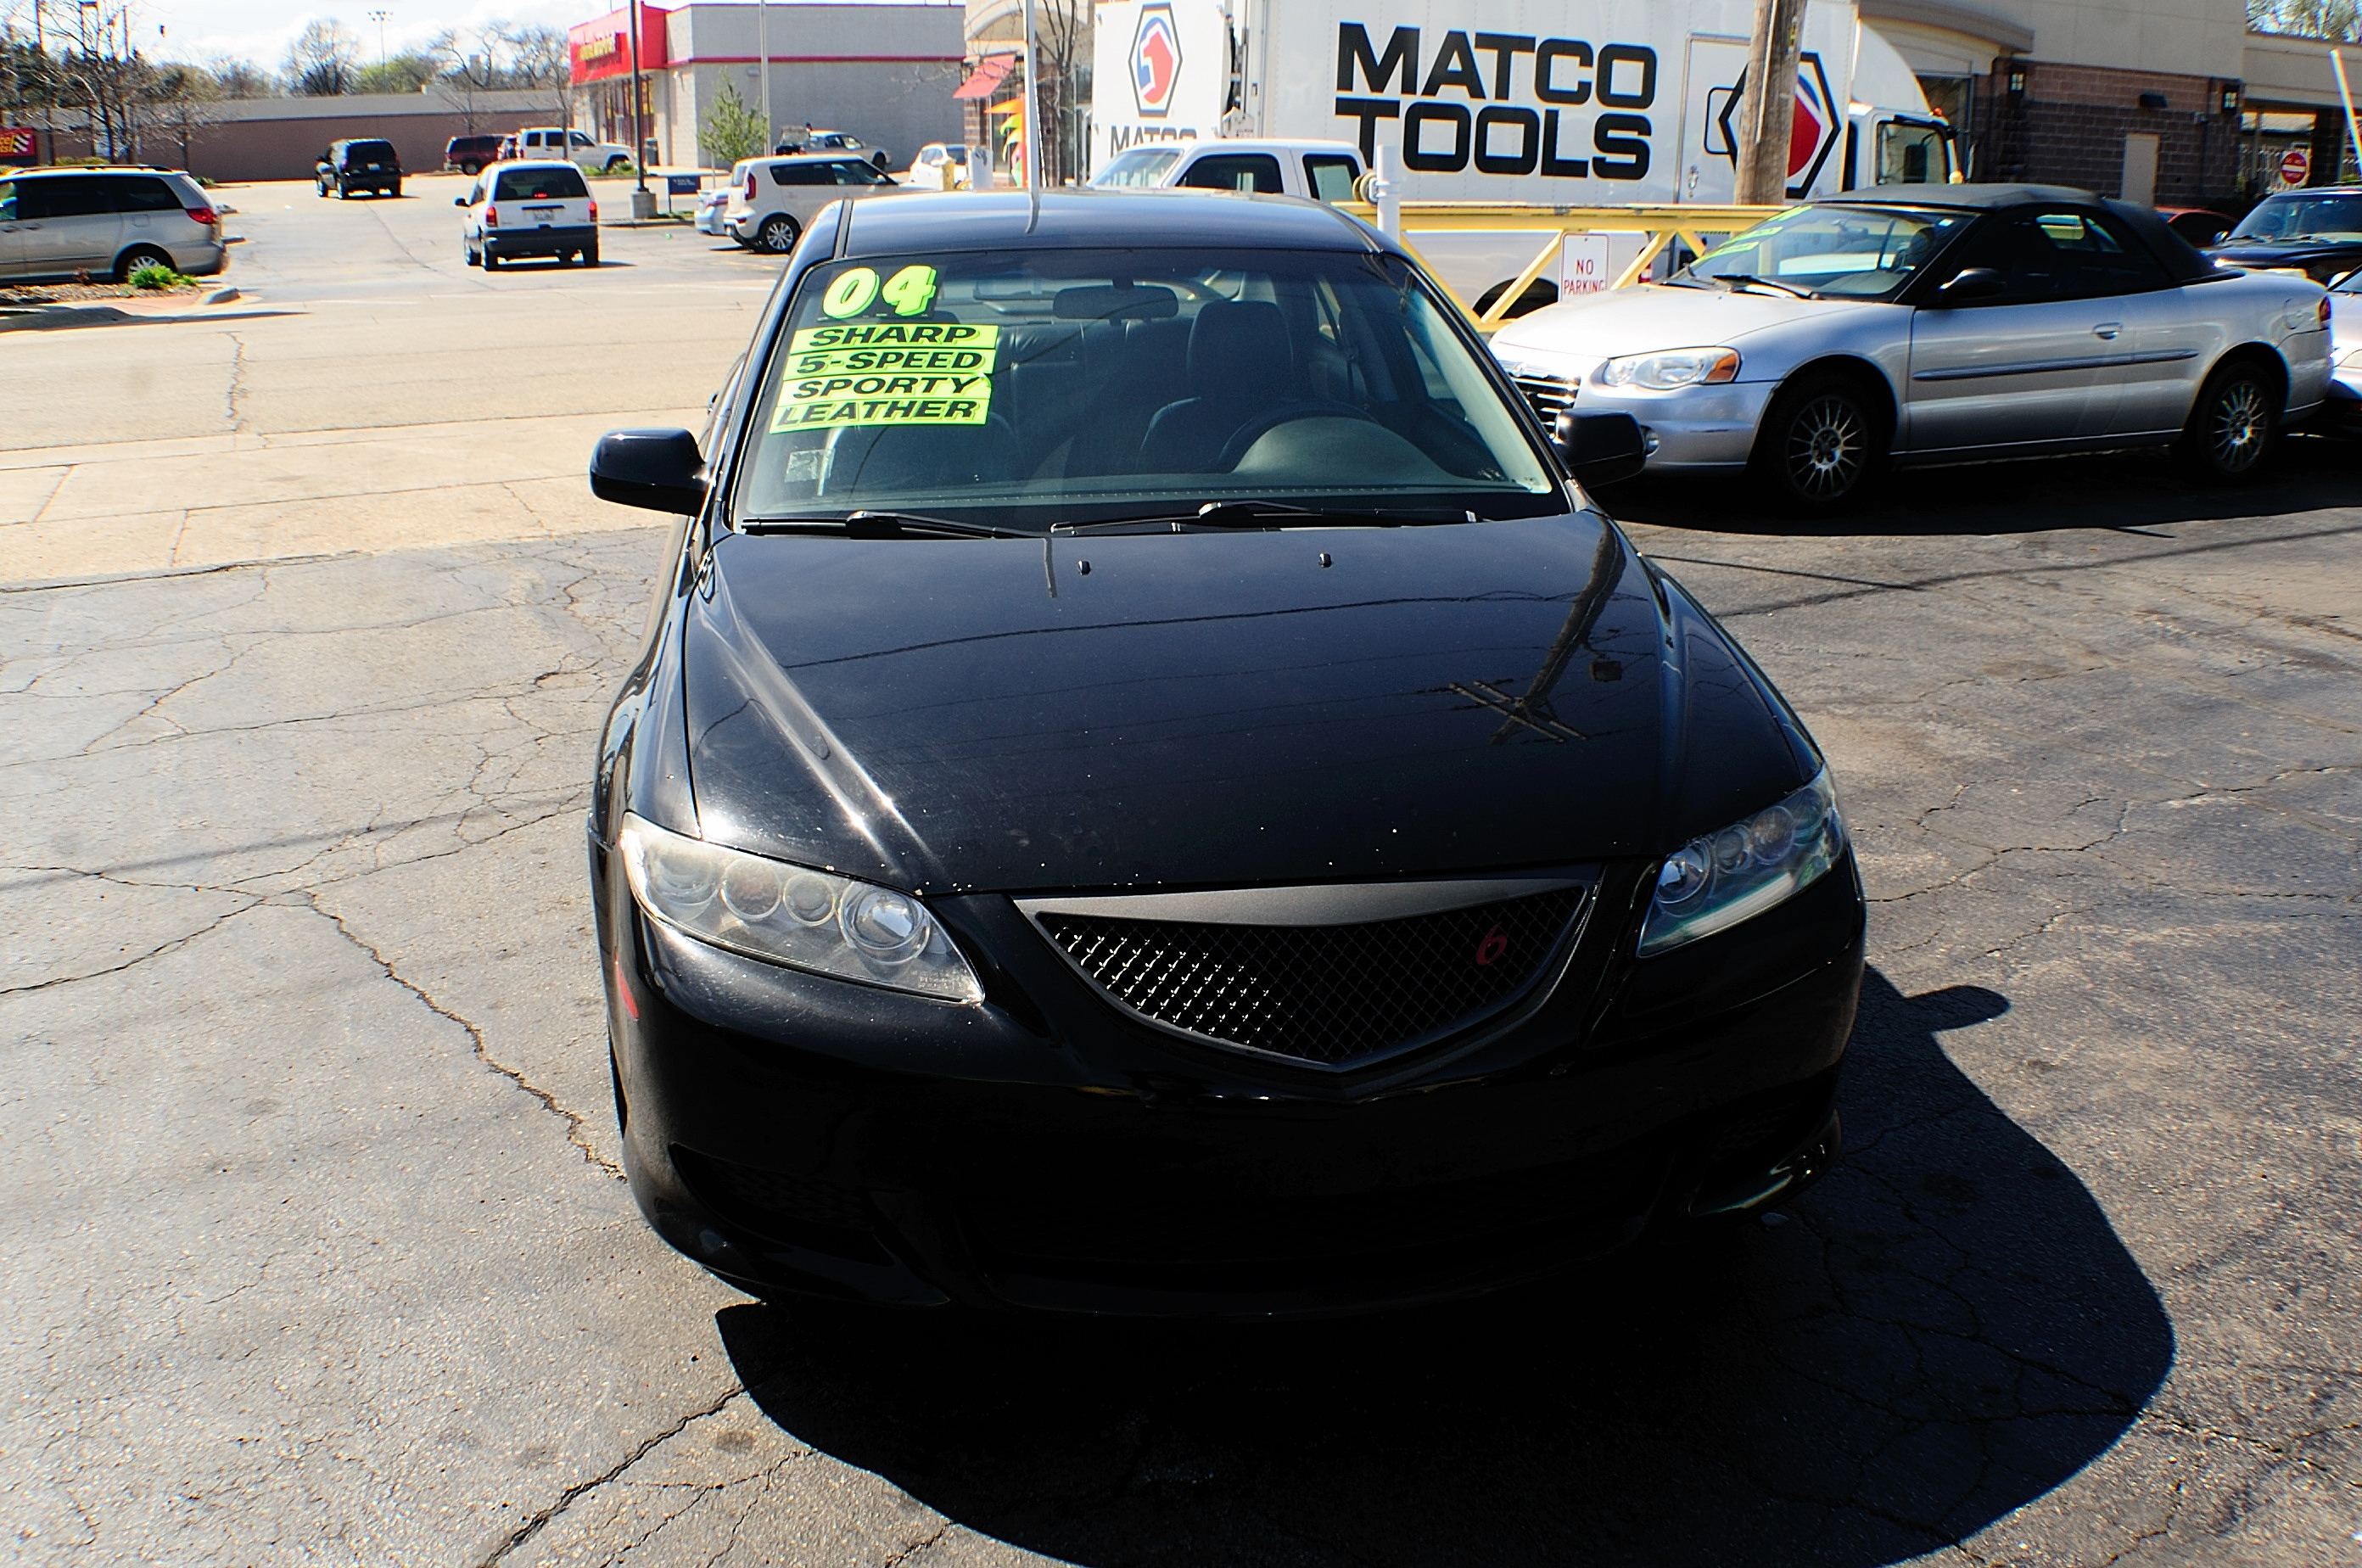 2004 Mazda 6 Black Manual Shift 4Dr Sedan sale used car Gurnee Kenosha Mchenry